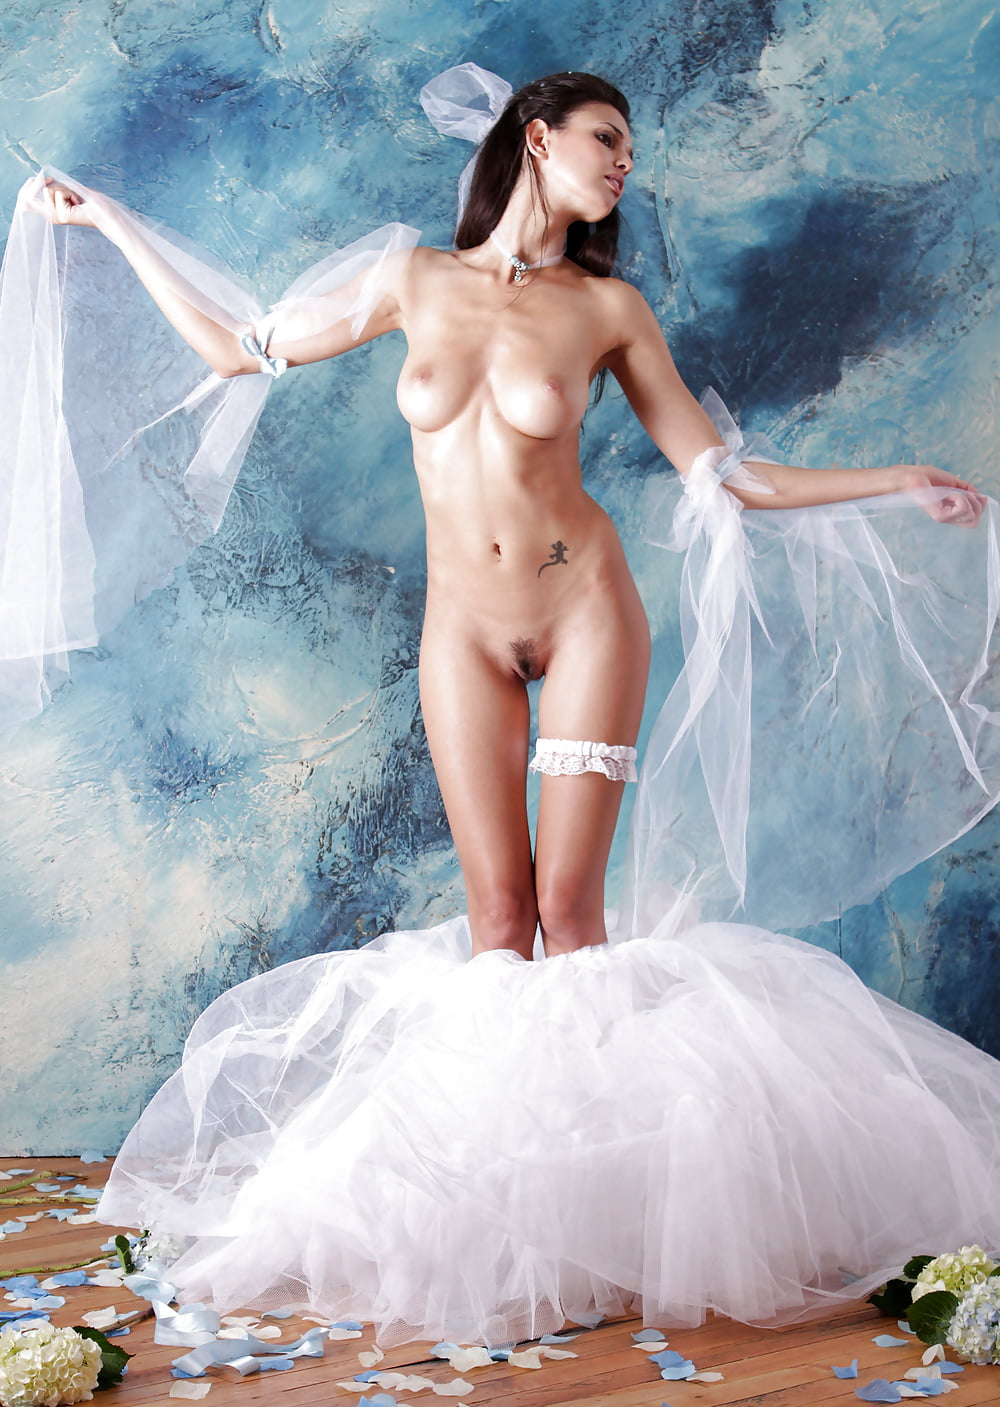 girl-teacher-nude-bride-gallery-sucking-midgets-mexican